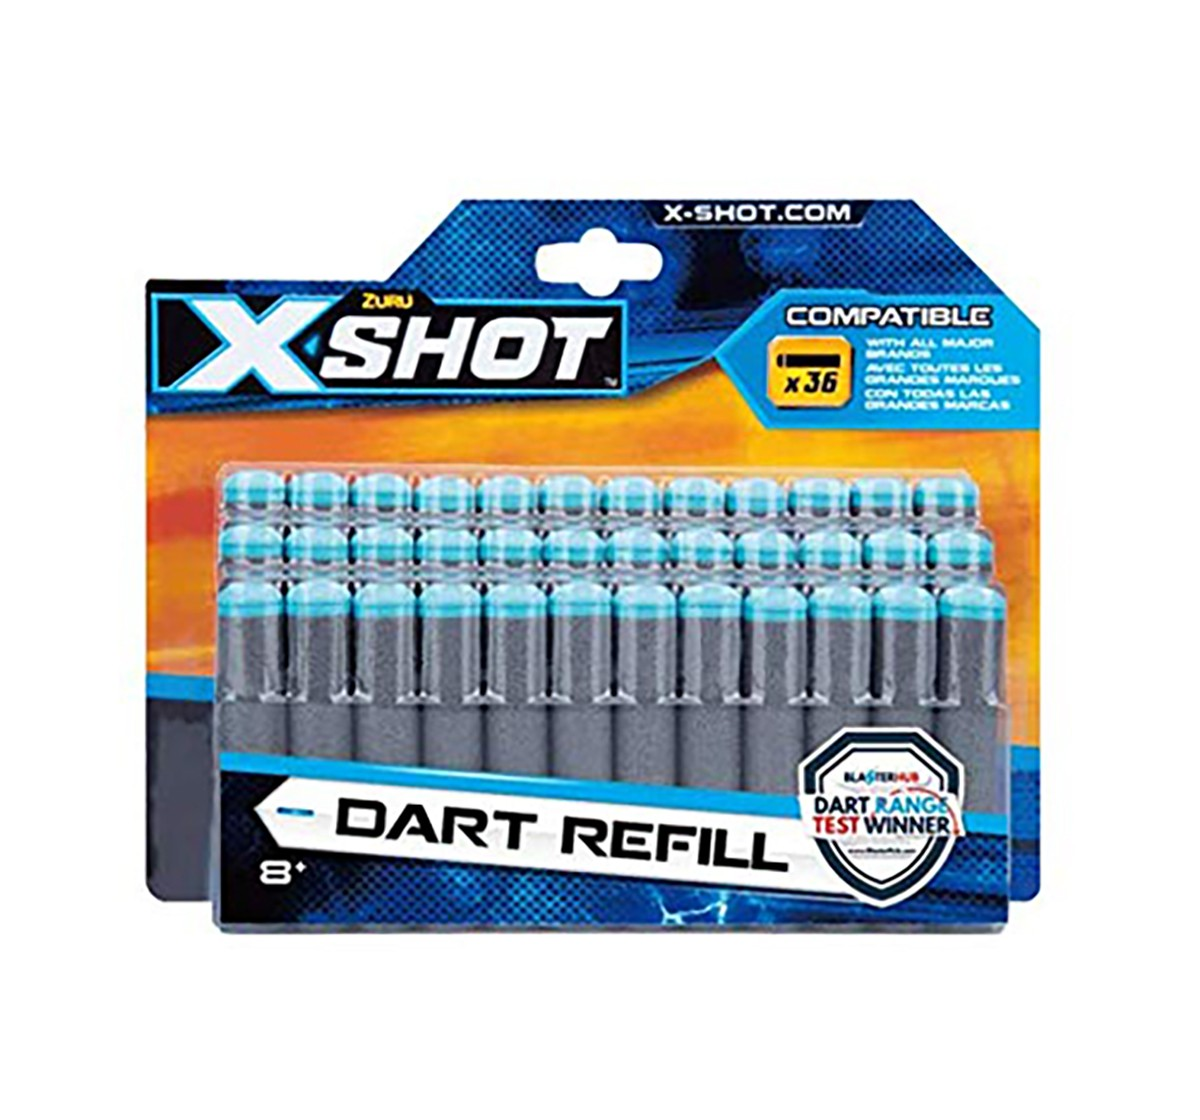 X-Shot 36 Darts Refill Pack Target Games  for Kids age 8Y+ (Grey)